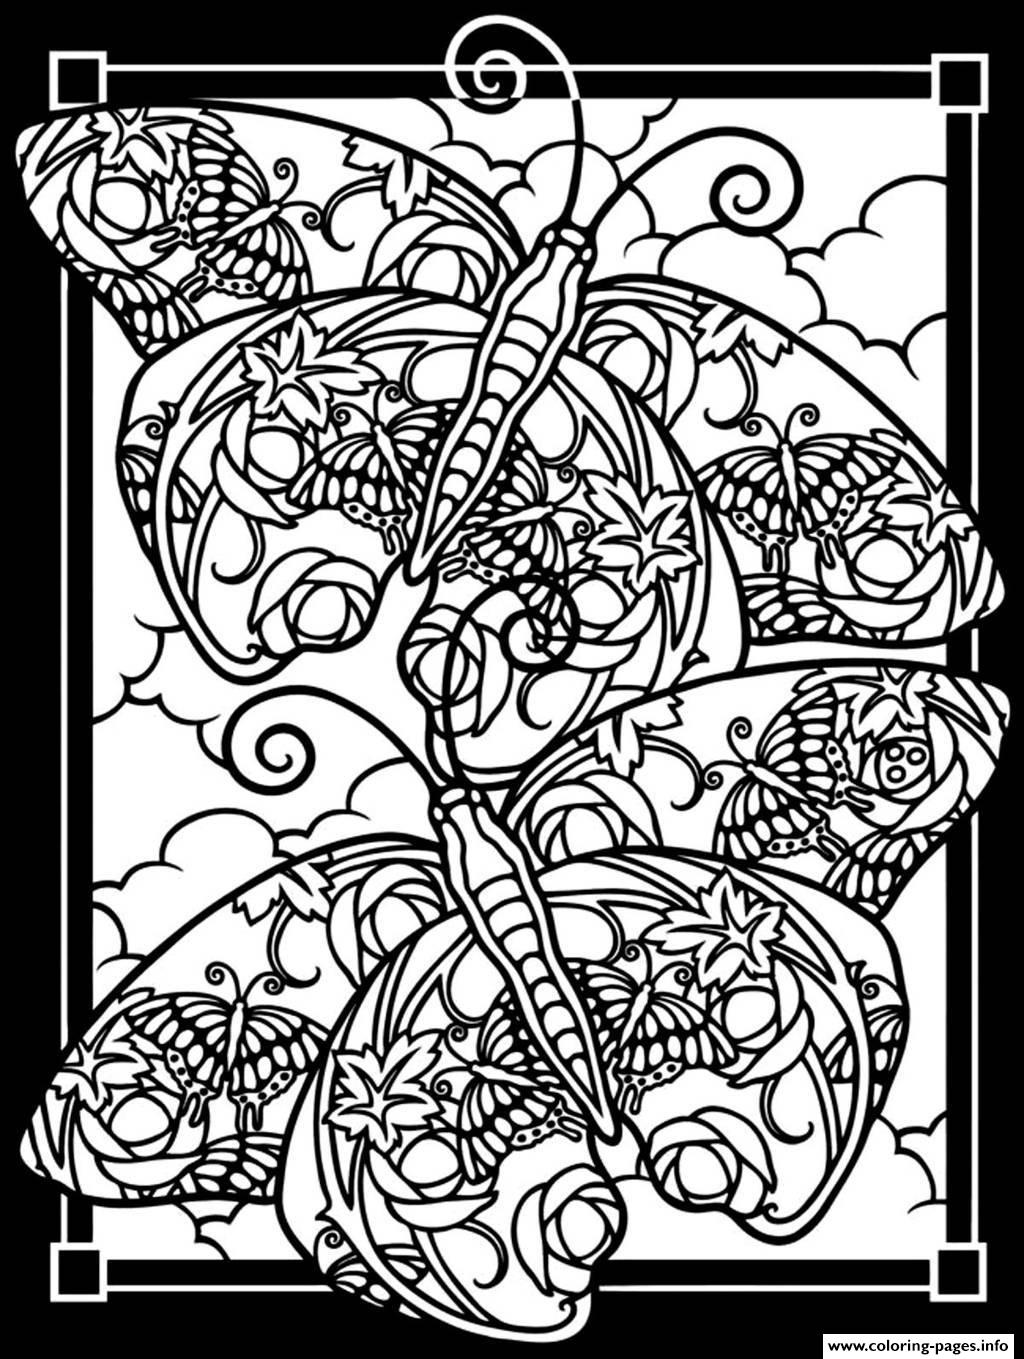 Adult Difficult Two Butterflies Black Background Coloring Pages